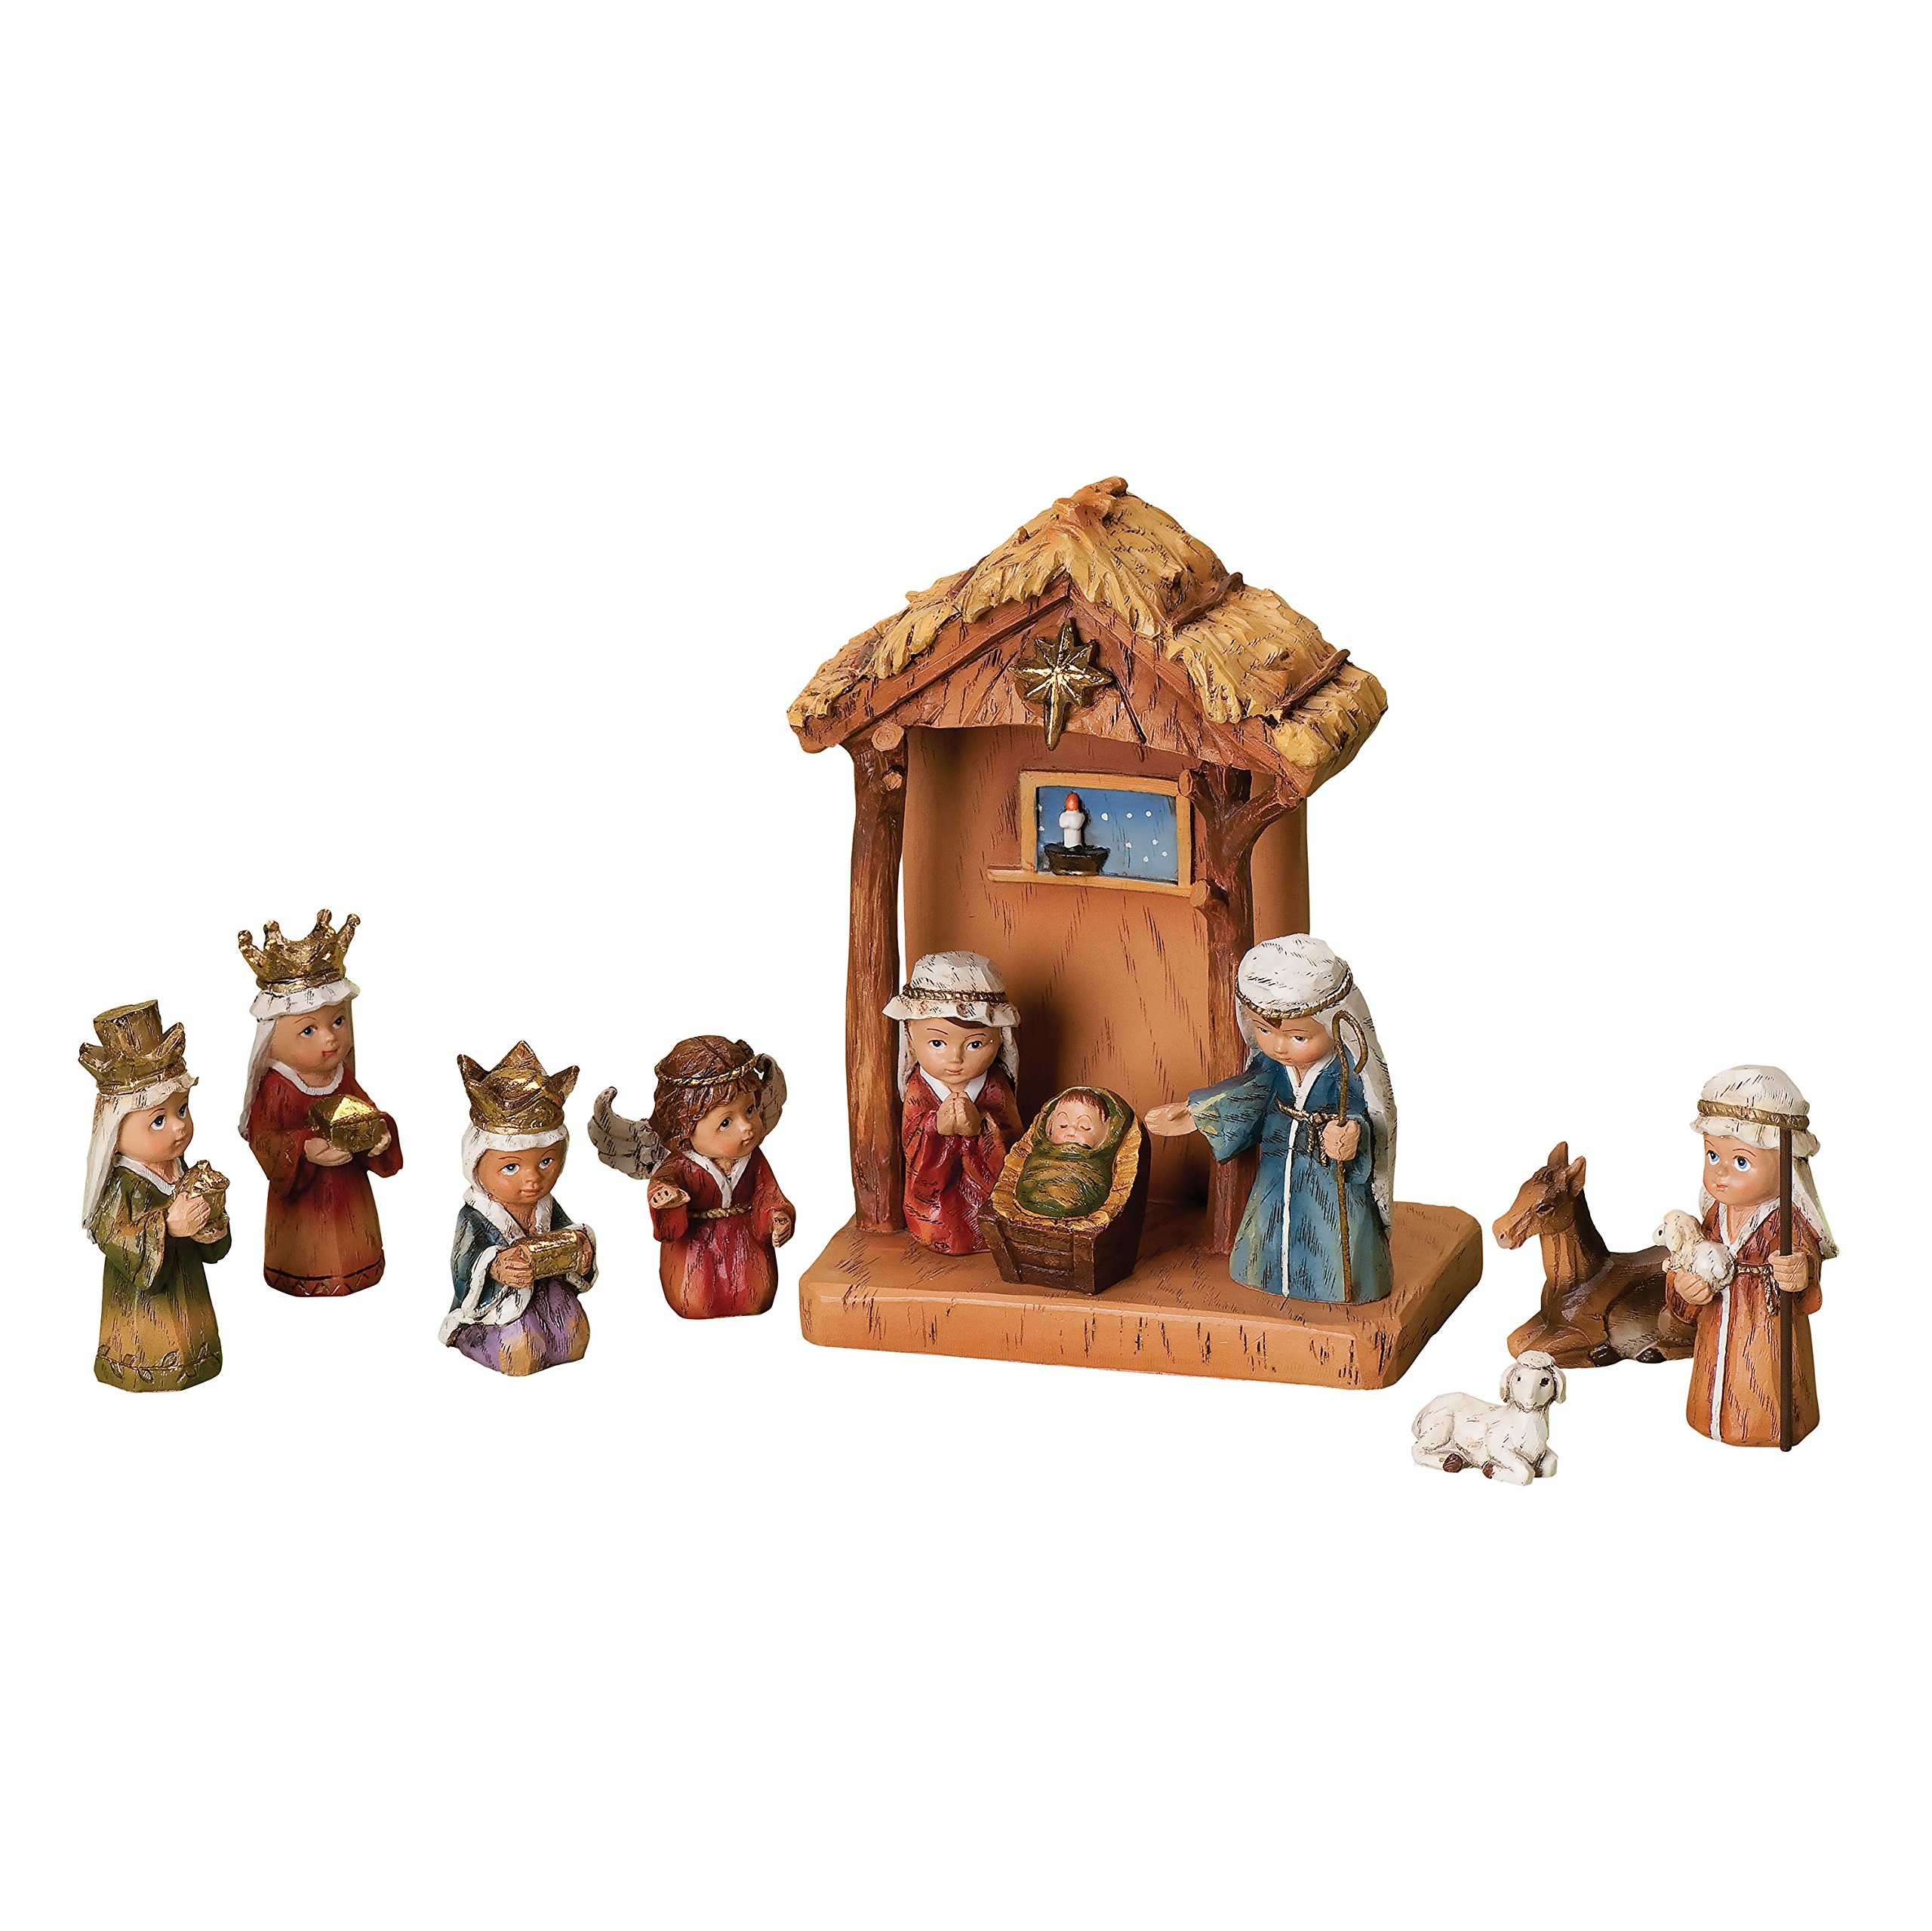 Wood Works 11-Piece Nativity Set Featuring Children as The Holy Family an Angel, a Shepherd with Sheep and 3 Kings, 8-Inch (36144)